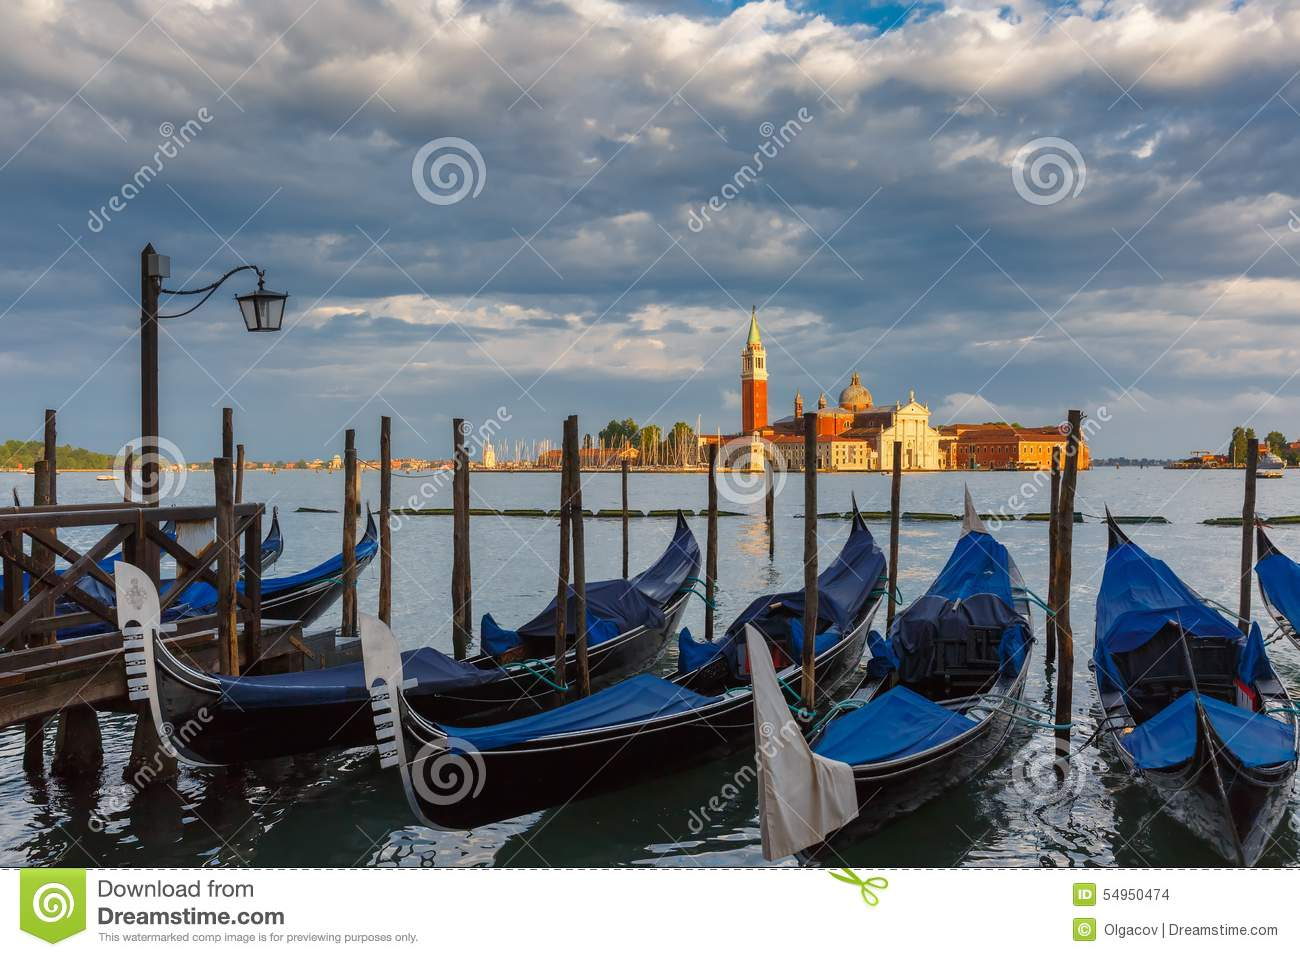 Download Gondolas In Venice Lagoon After The Storm, Italia Stock Photo - Image of landscape, docked: 54950474